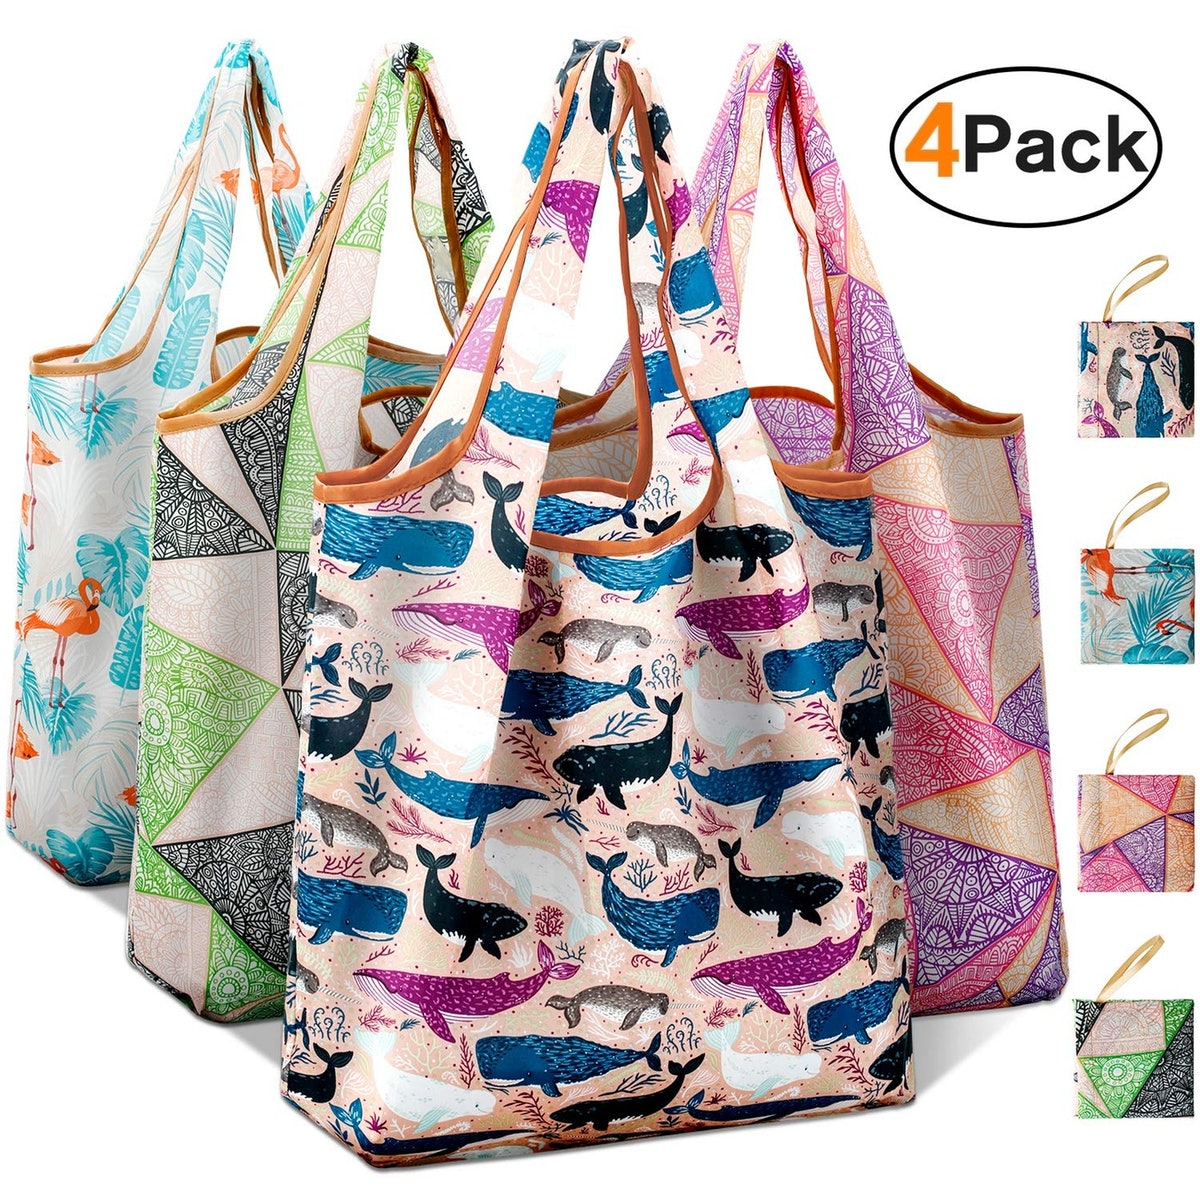 iFAVO Reusable Grocery Bags (4-Pack)